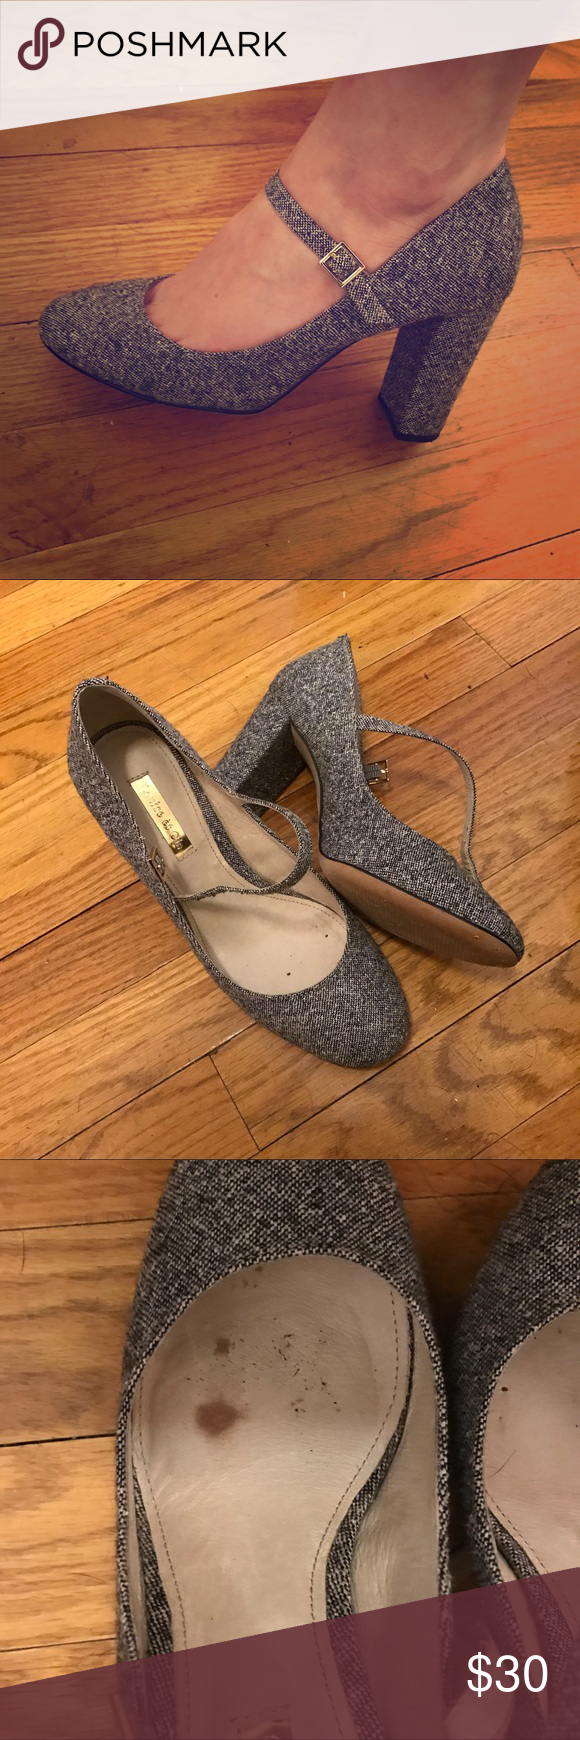 9dba3c4f091 Louise et Cie Jayde Mary Janes Gorgeous grey tweed Mary Janes with block  heel. Worn twice. Perfect condition on the outside but a small stain on the  inside ...